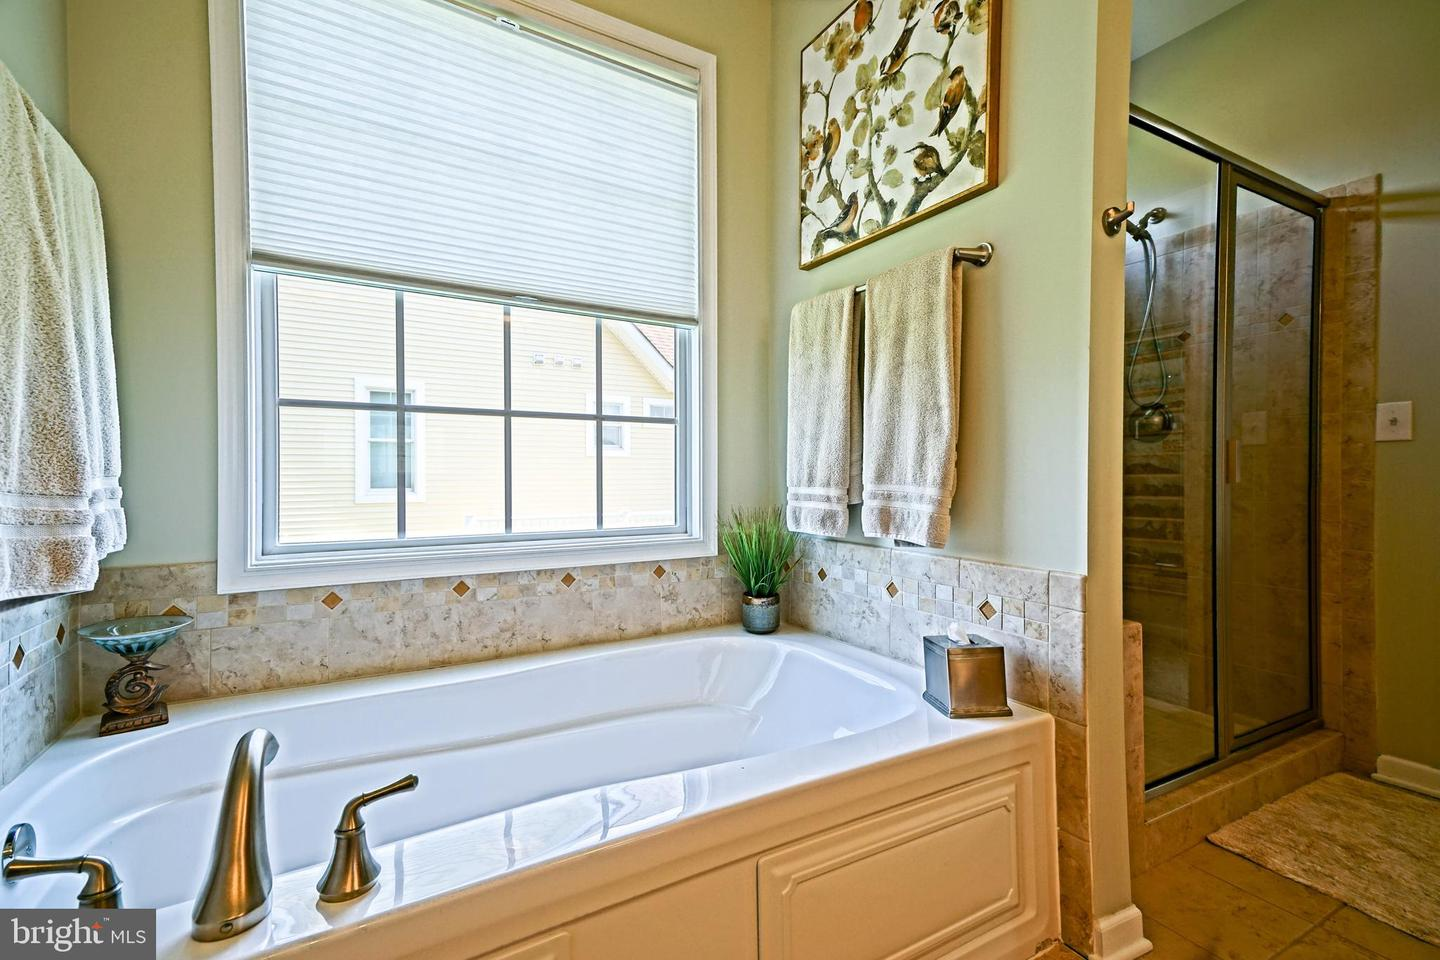 DESU139128-301667383651-2019-08-05-10-43-56 35222 Overfalls Dr N | Lewes, DE Real Estate For Sale | MLS# Desu139128  - Lee Ann Group